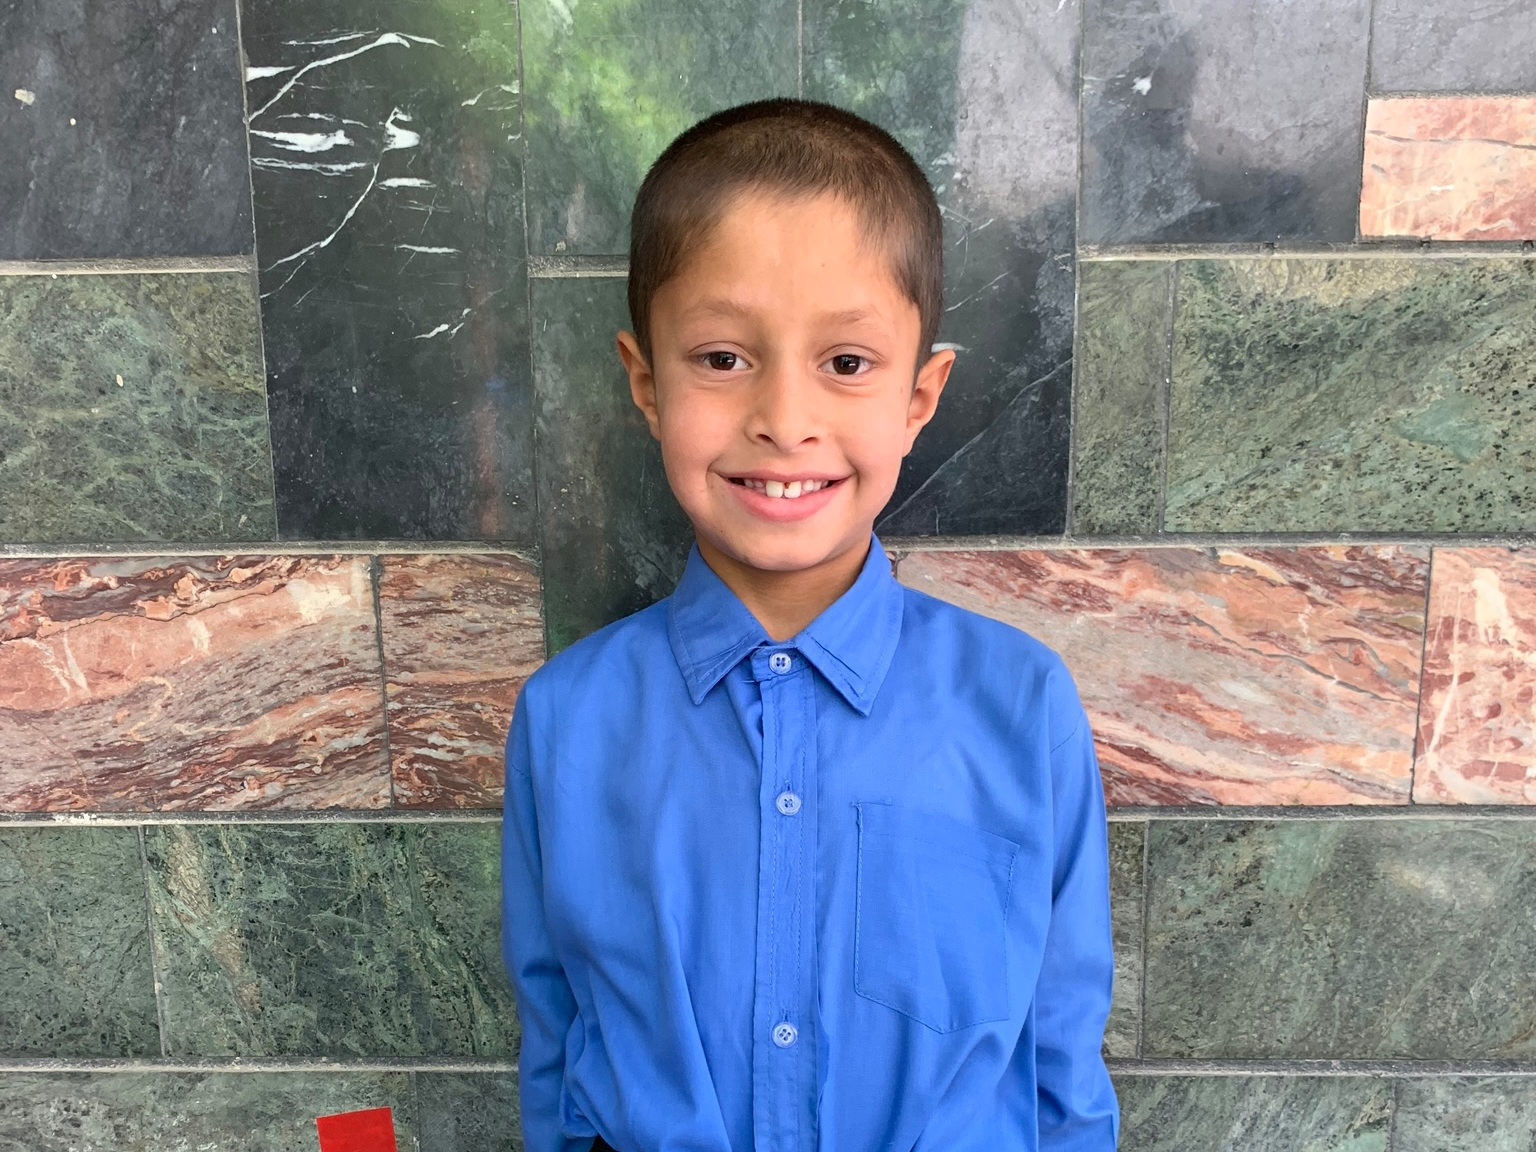 Arash, Age 8 - Arash has 2 siblings. His mothe and fatherr are without work at this time.BE ARASH'S PARTNER>